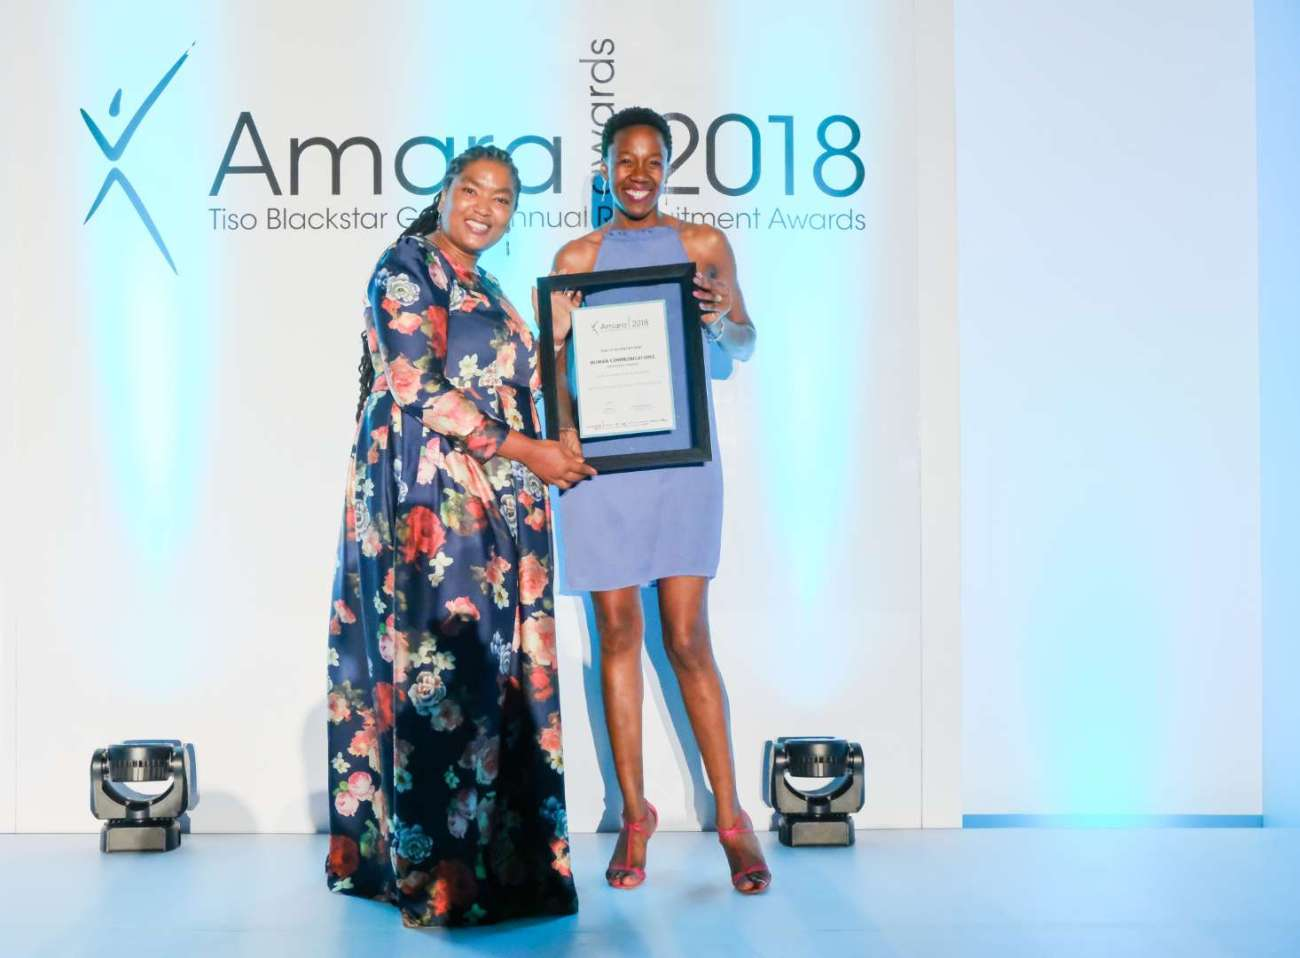 Photo from AMARAS Awards 2018